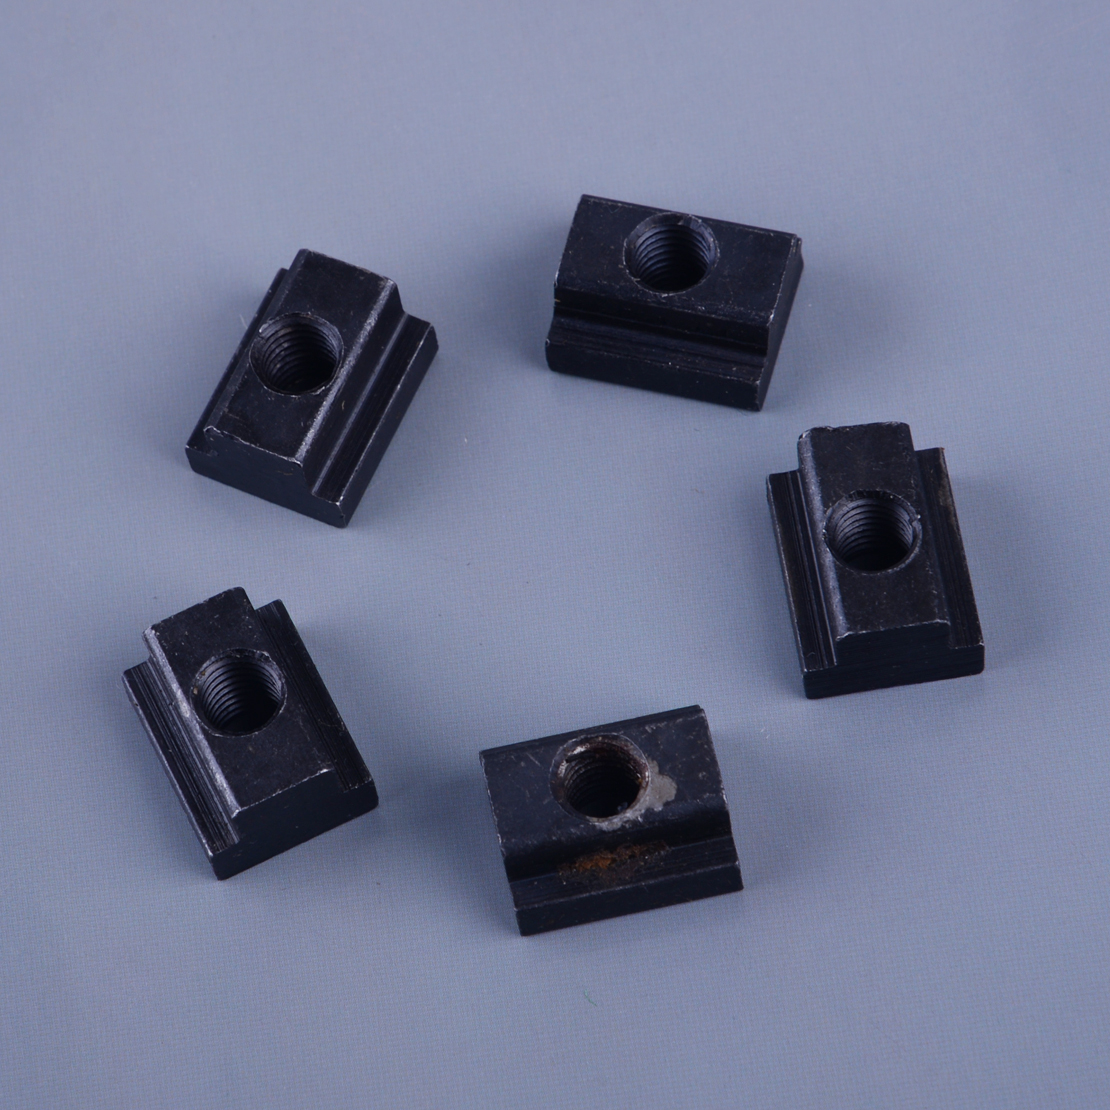 Black Oxide Finish T Slot Nuts M8//10 Threads Fit Into T-Slots in Machine Tool Tables 5 pcs M8